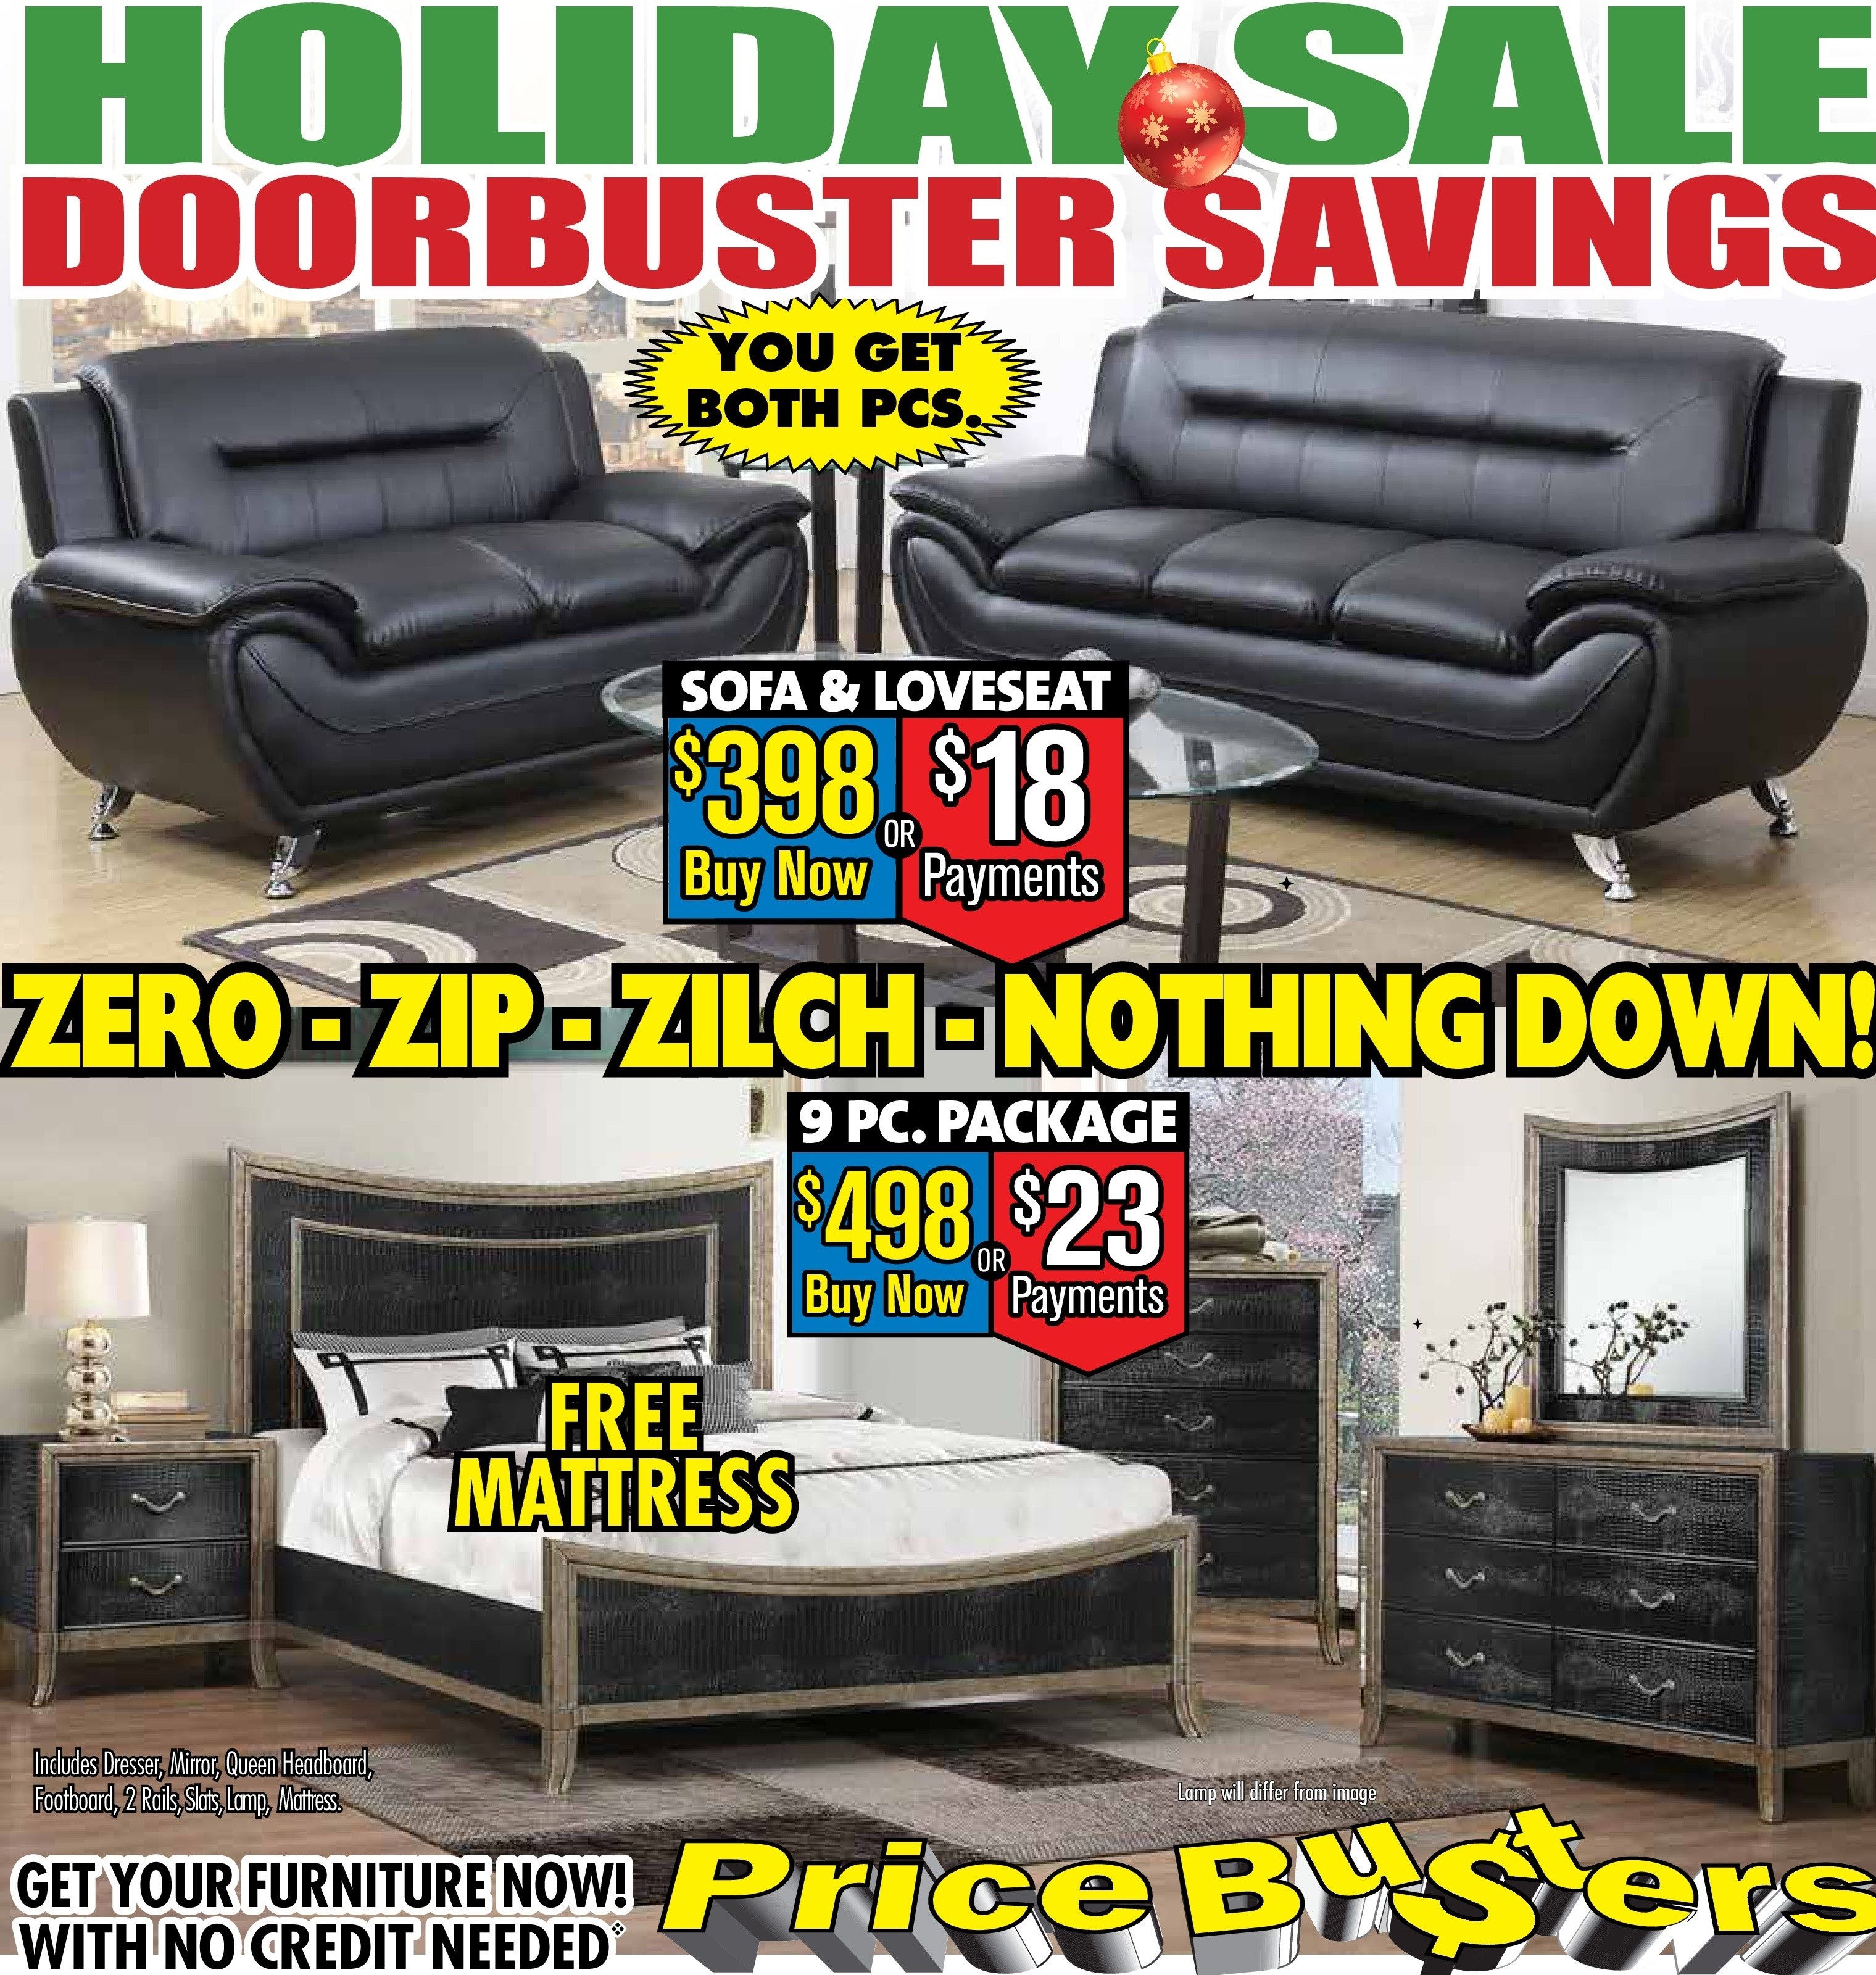 Price Busters Discount Furniture In Forestville Md 20747